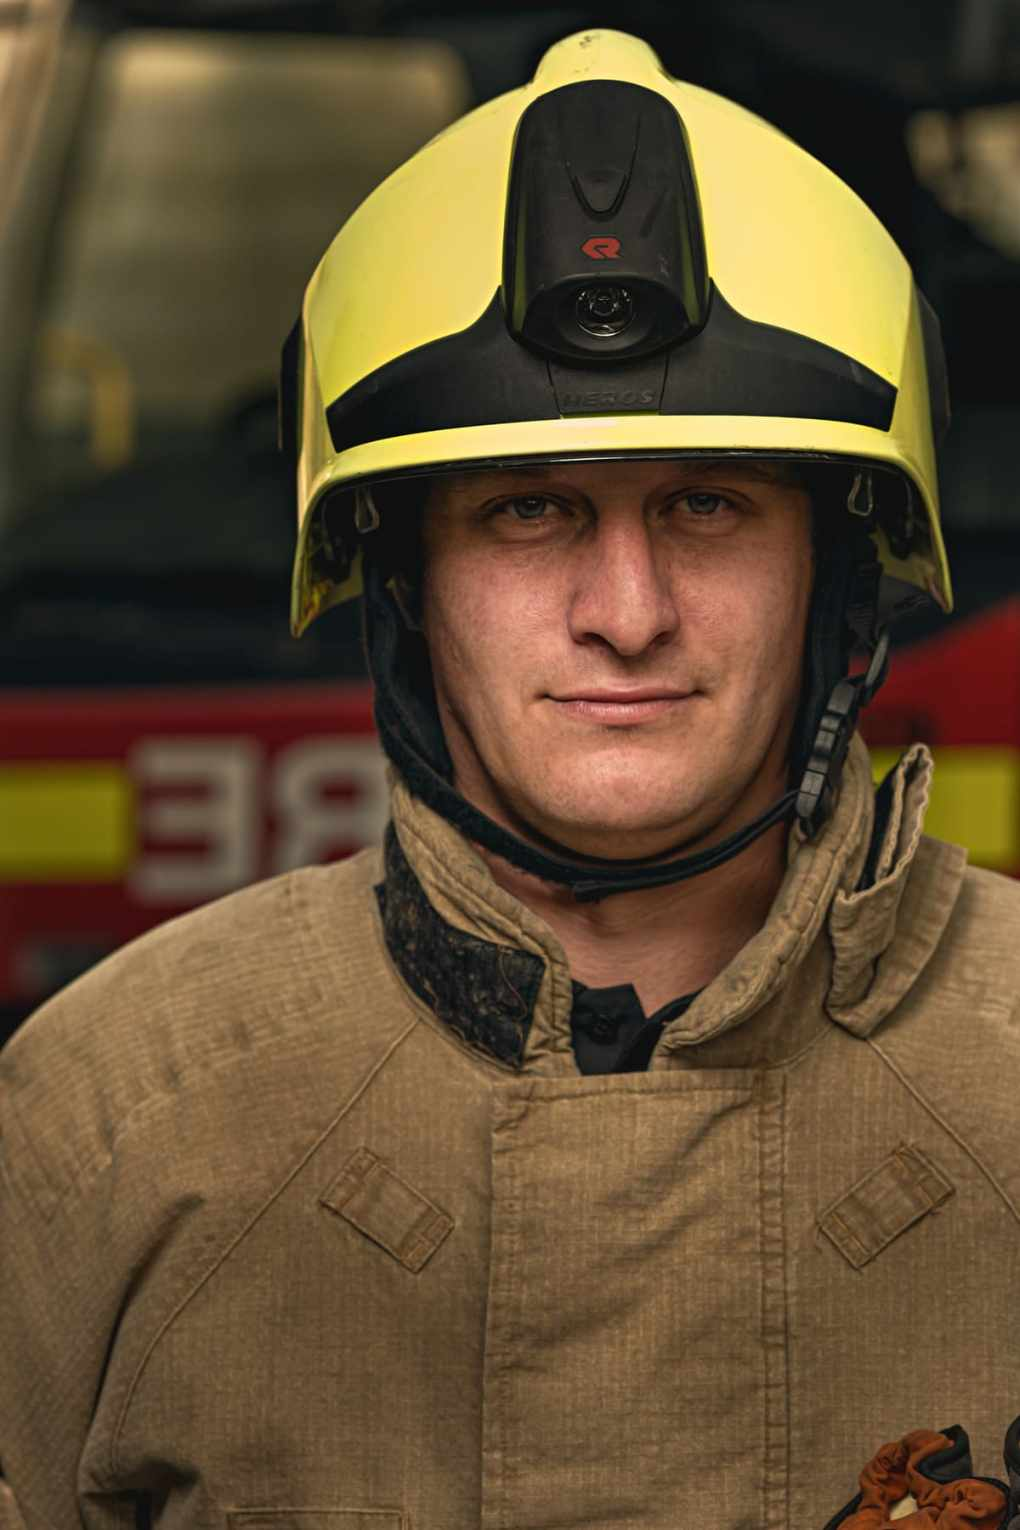 Firefighter Louis Johnson, Site foreman for a groundworks company